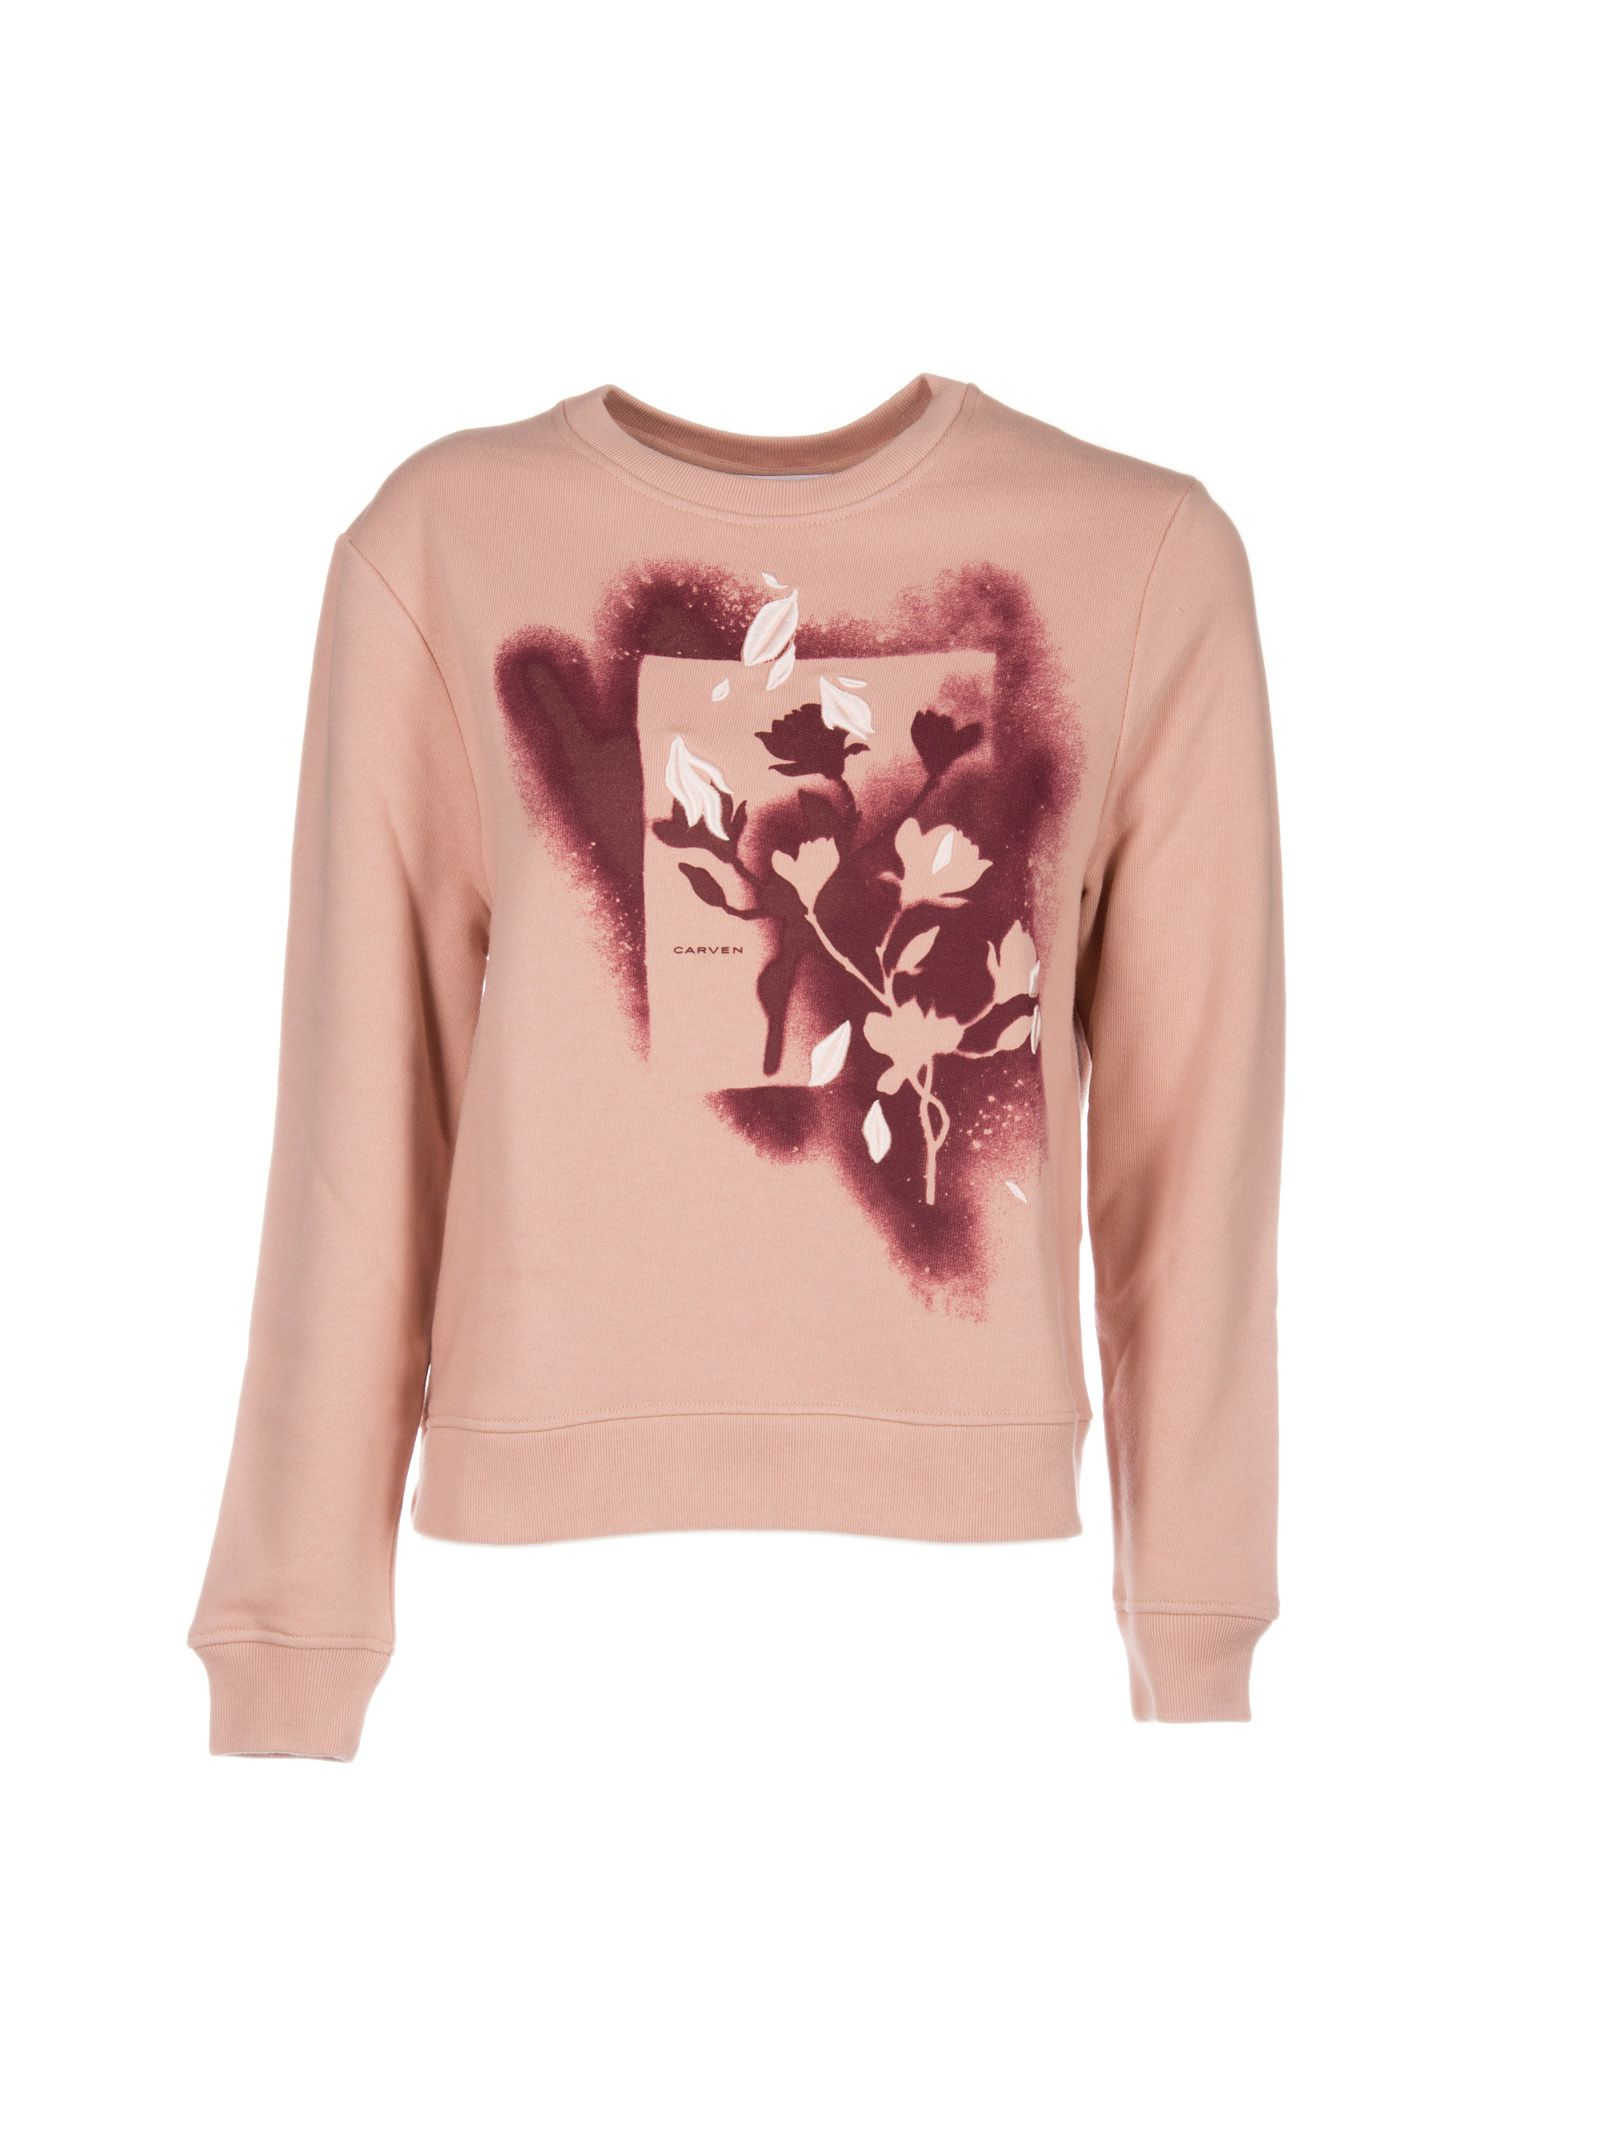 Carven Flower Spray Sweatshirt